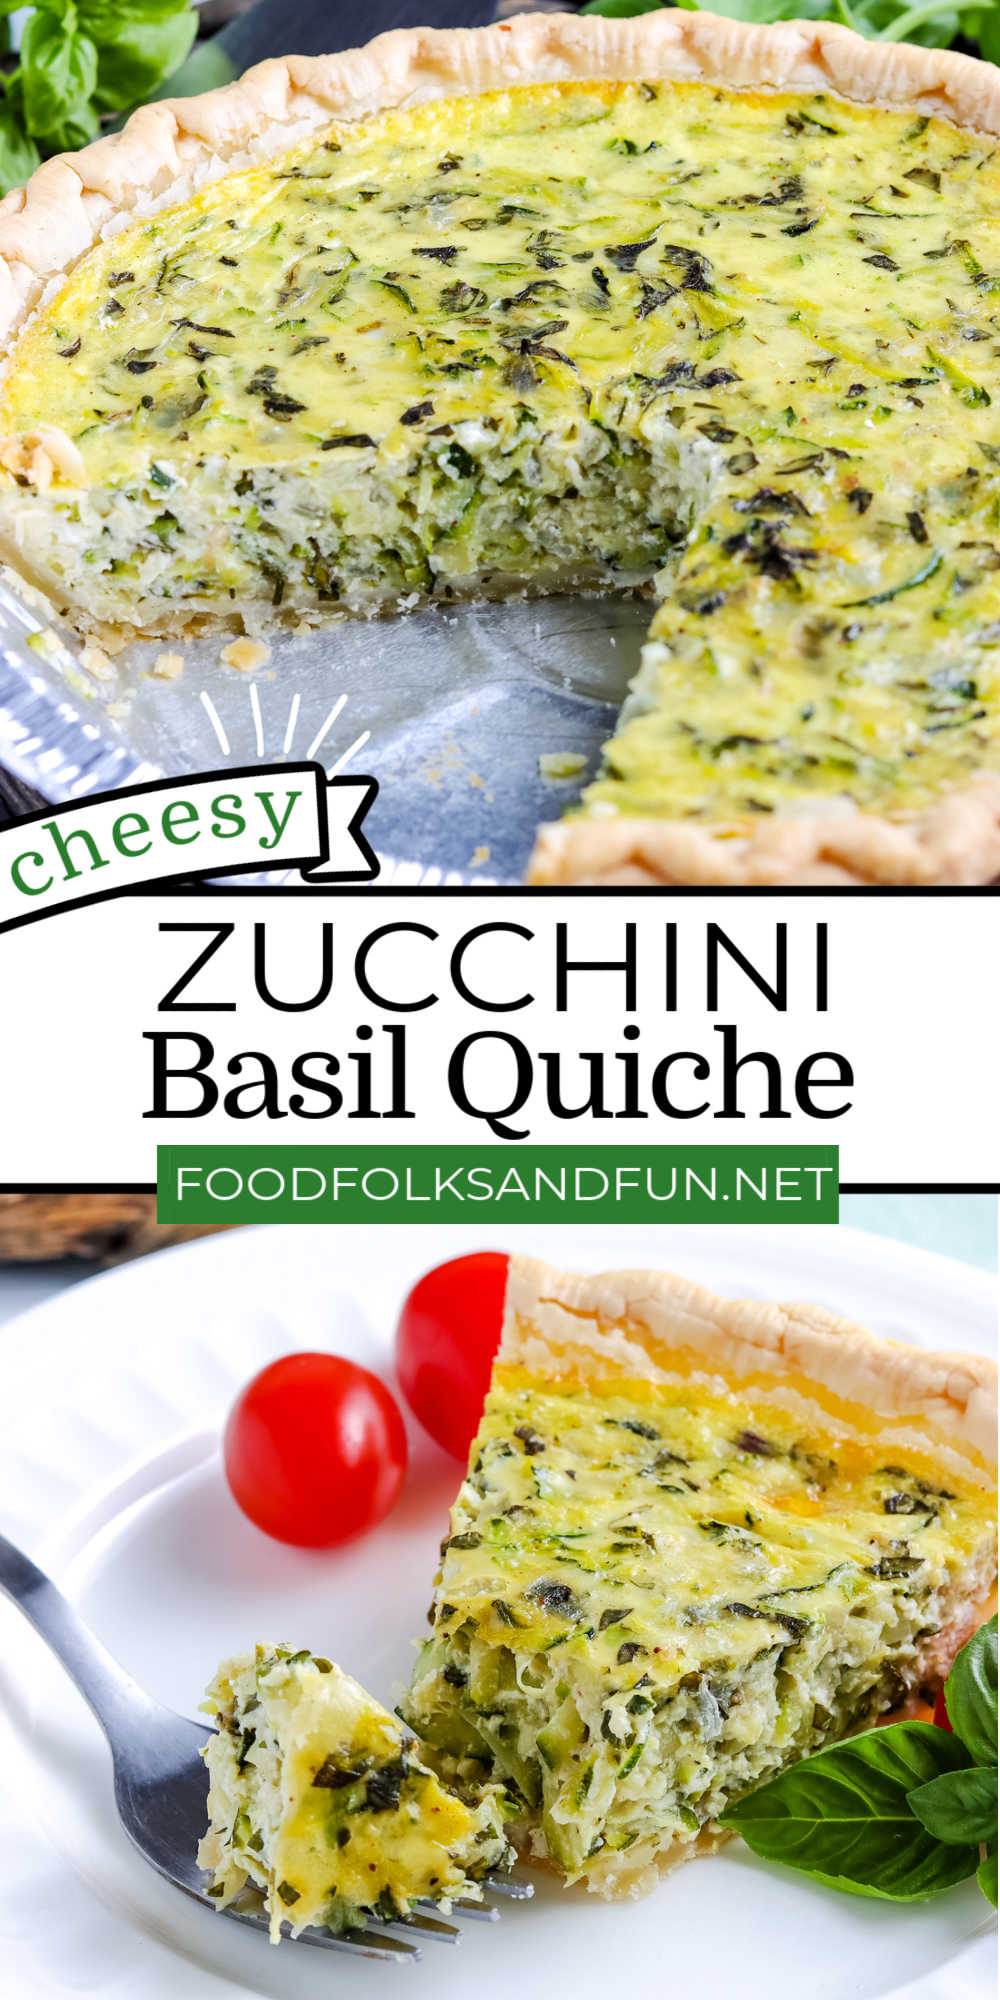 This Cheesy Zucchini Quiche is just the summer dinner recipe to make with fresh, in-season zucchini! This recipe serves eight and costs $5.89. That's just 74¢ per serving! via @foodfolksandfun